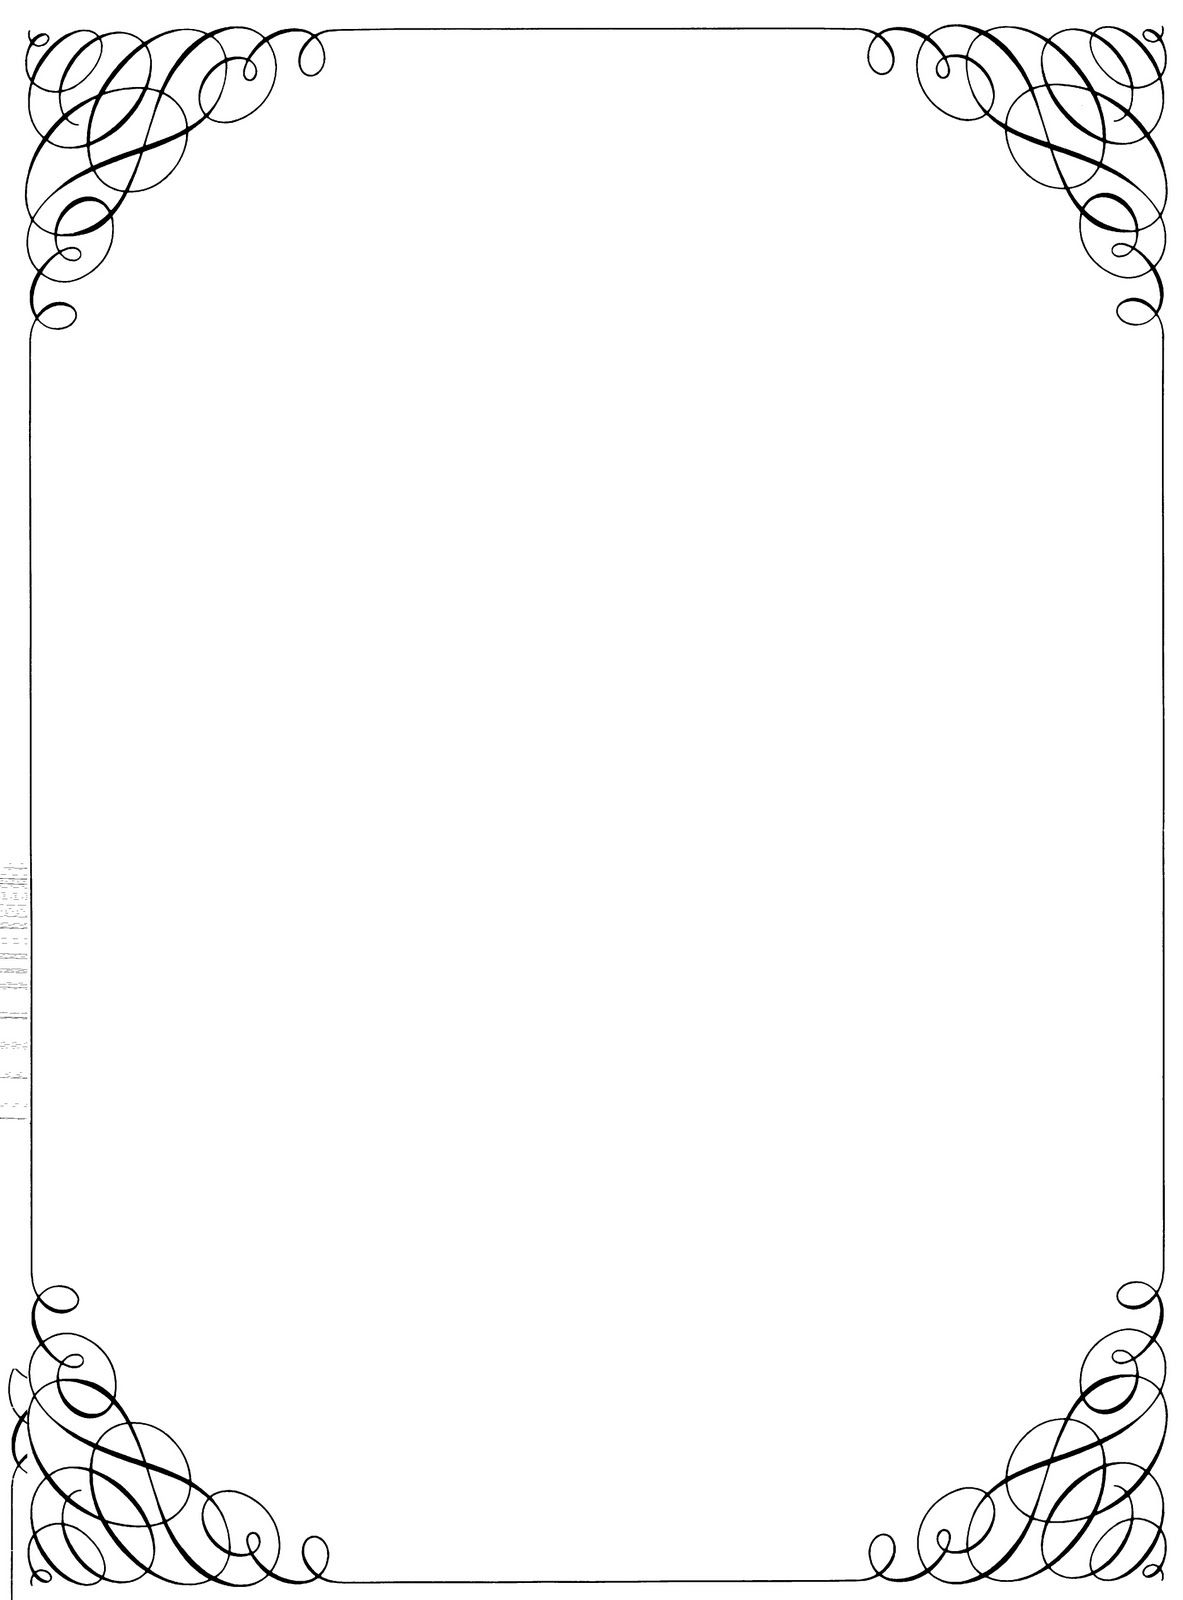 Free Microsoft Borders and Frames - WOW.com - Image Results ...